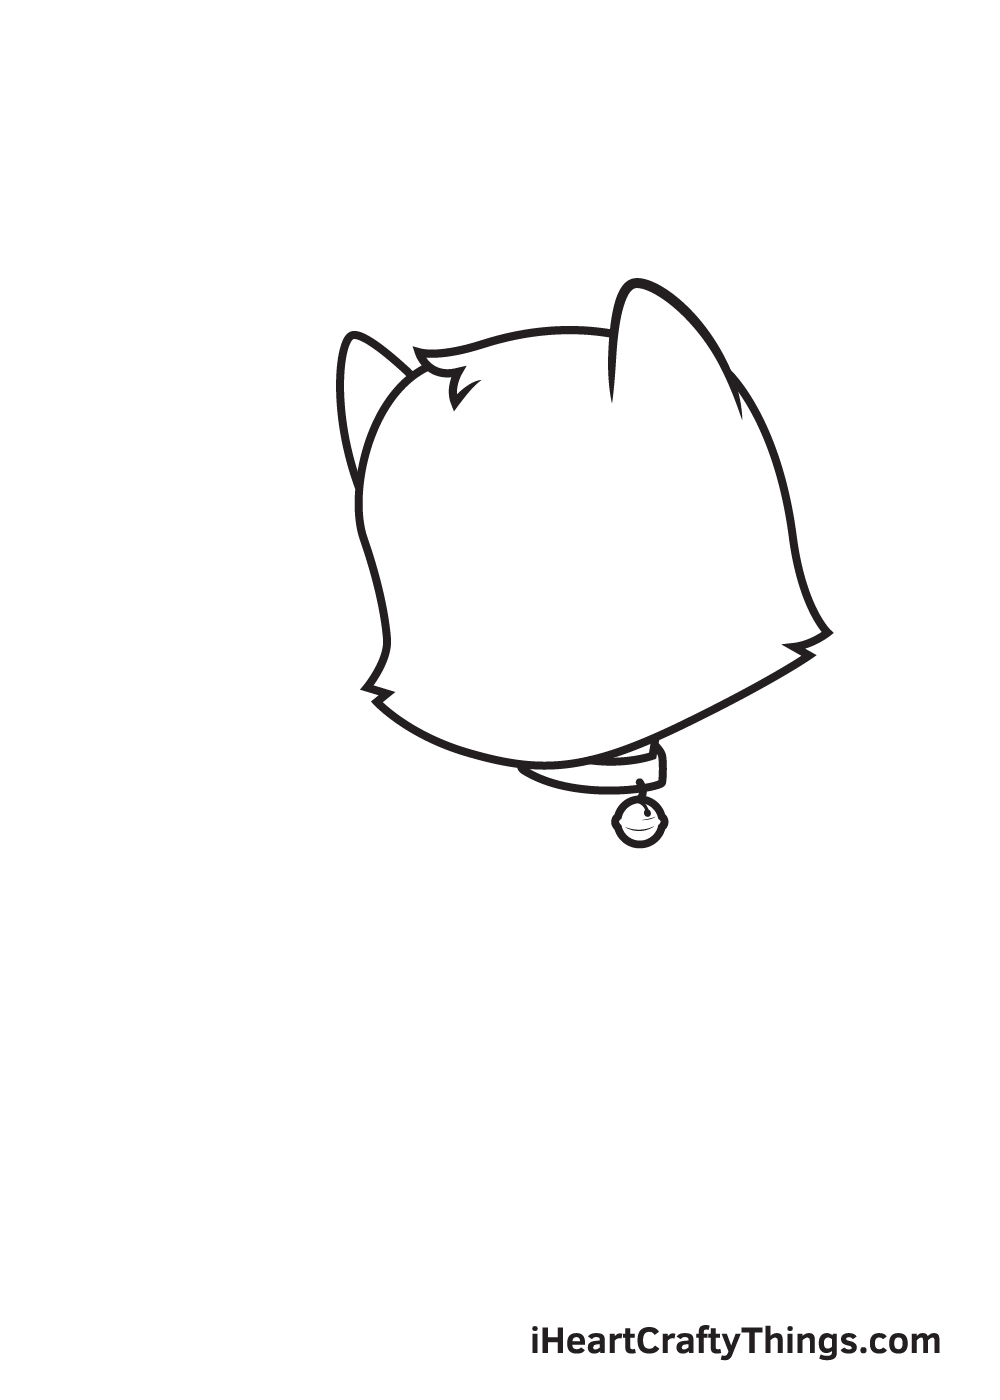 cat drawing – step 4